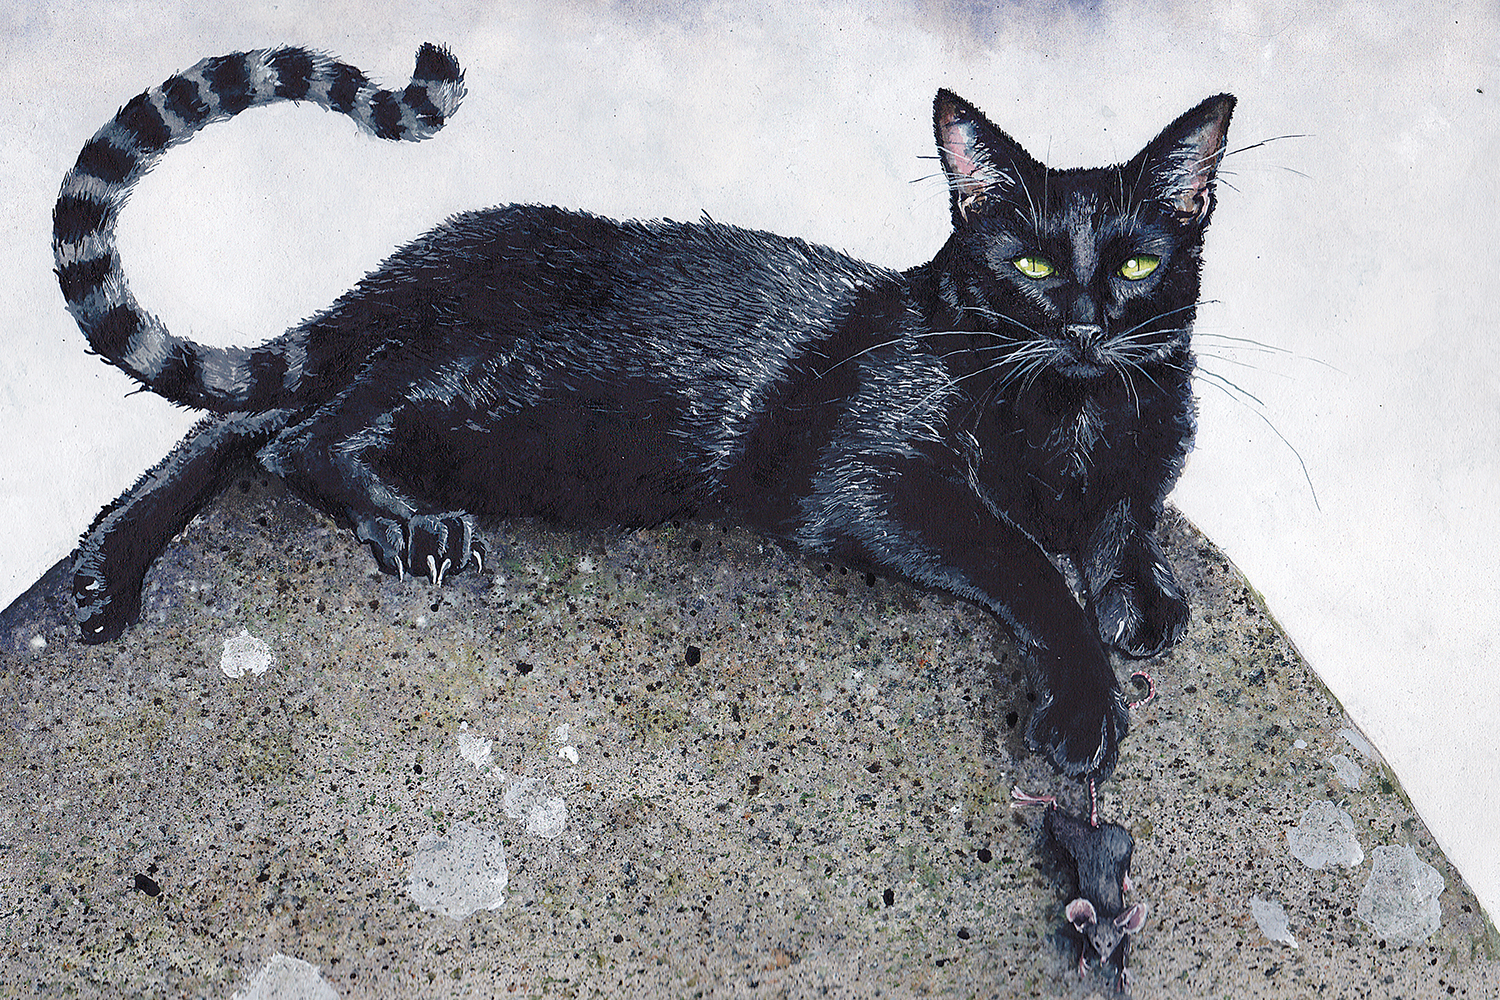 black cat laying on rock with claws out holding on to a mouse's tail